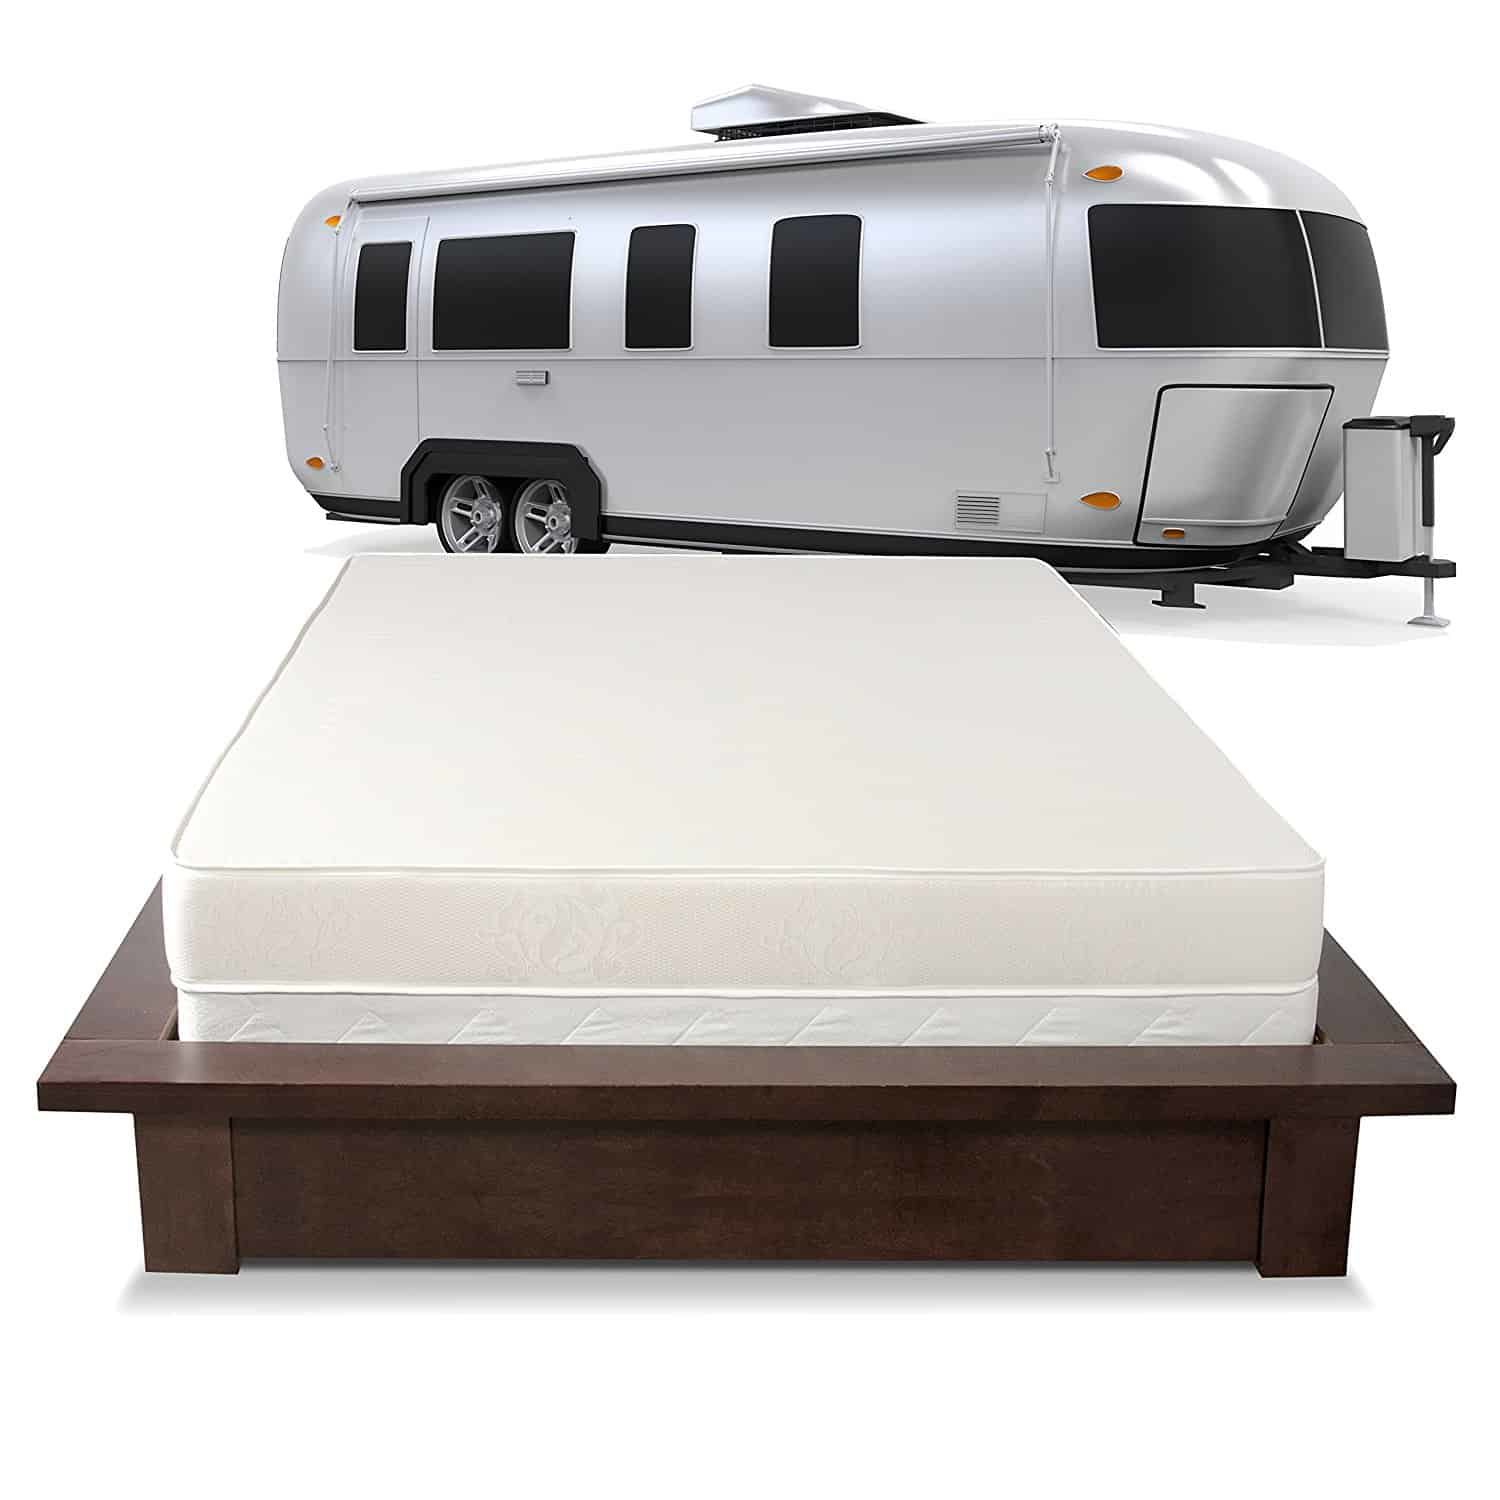 Is Another Online That Has Pages Of Rv Mattresses